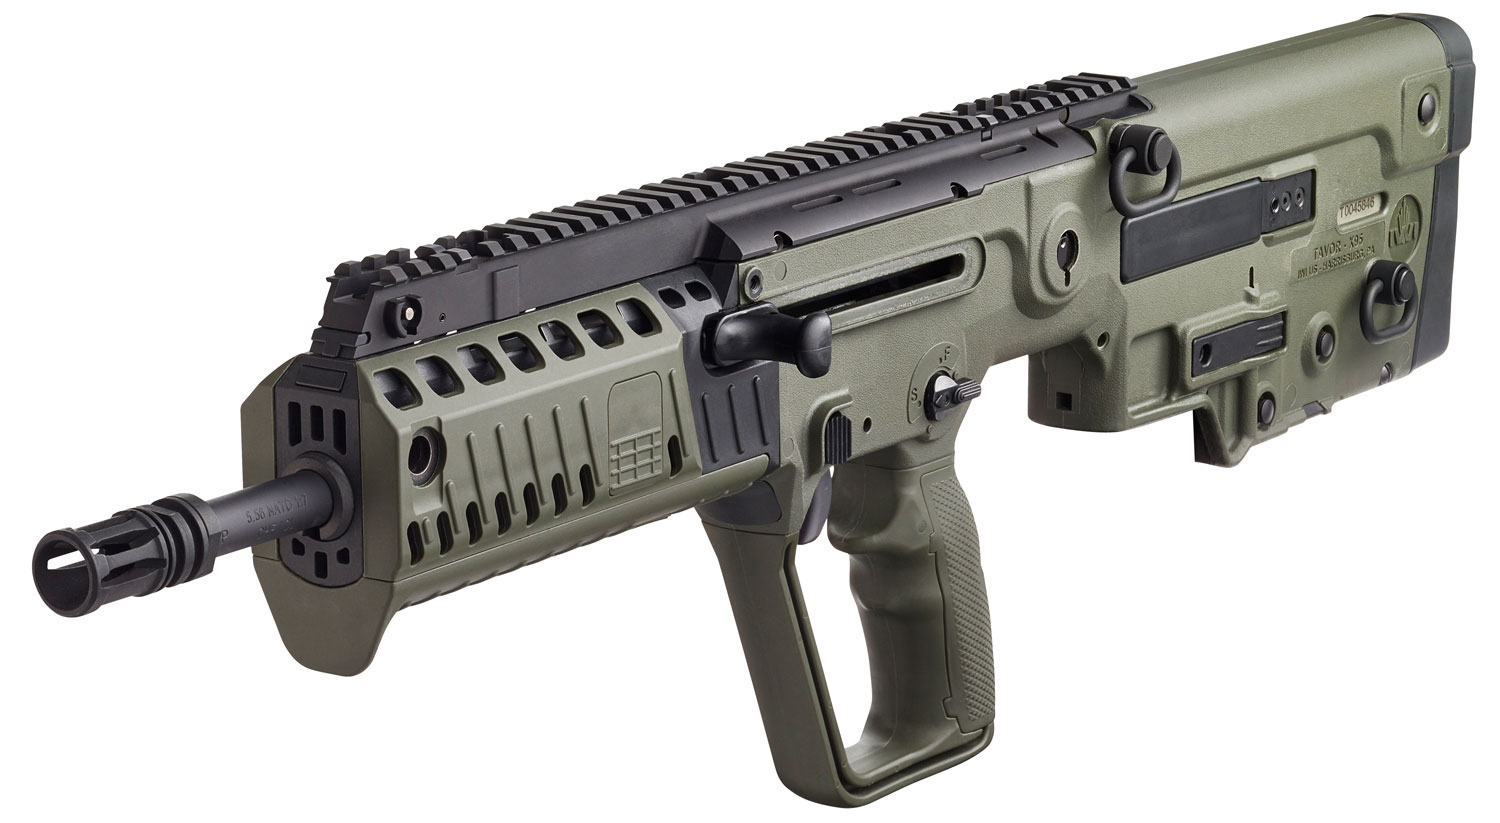 IWI US XG18 Tavor X95 Semi-Automatic 223 Remington/5.56 NATO 18.5